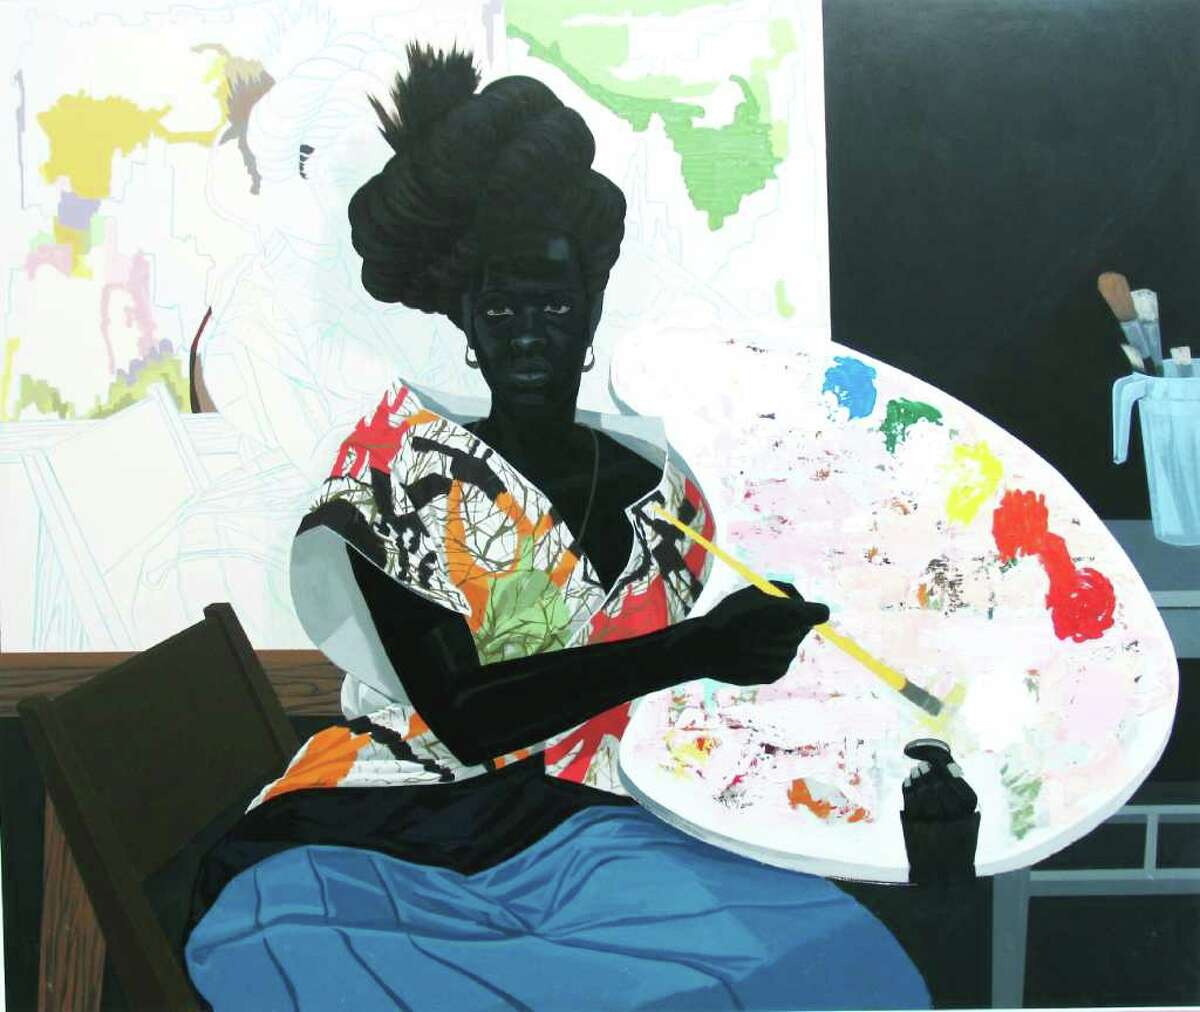 Kerry James Marshall (b. 1955) Untitled 2009 acrylic on pvc 61 1/8 x 72 7/8 x 3 7/8 inches (Courtesy of the artist and Jack Shainman Gallery, New York)